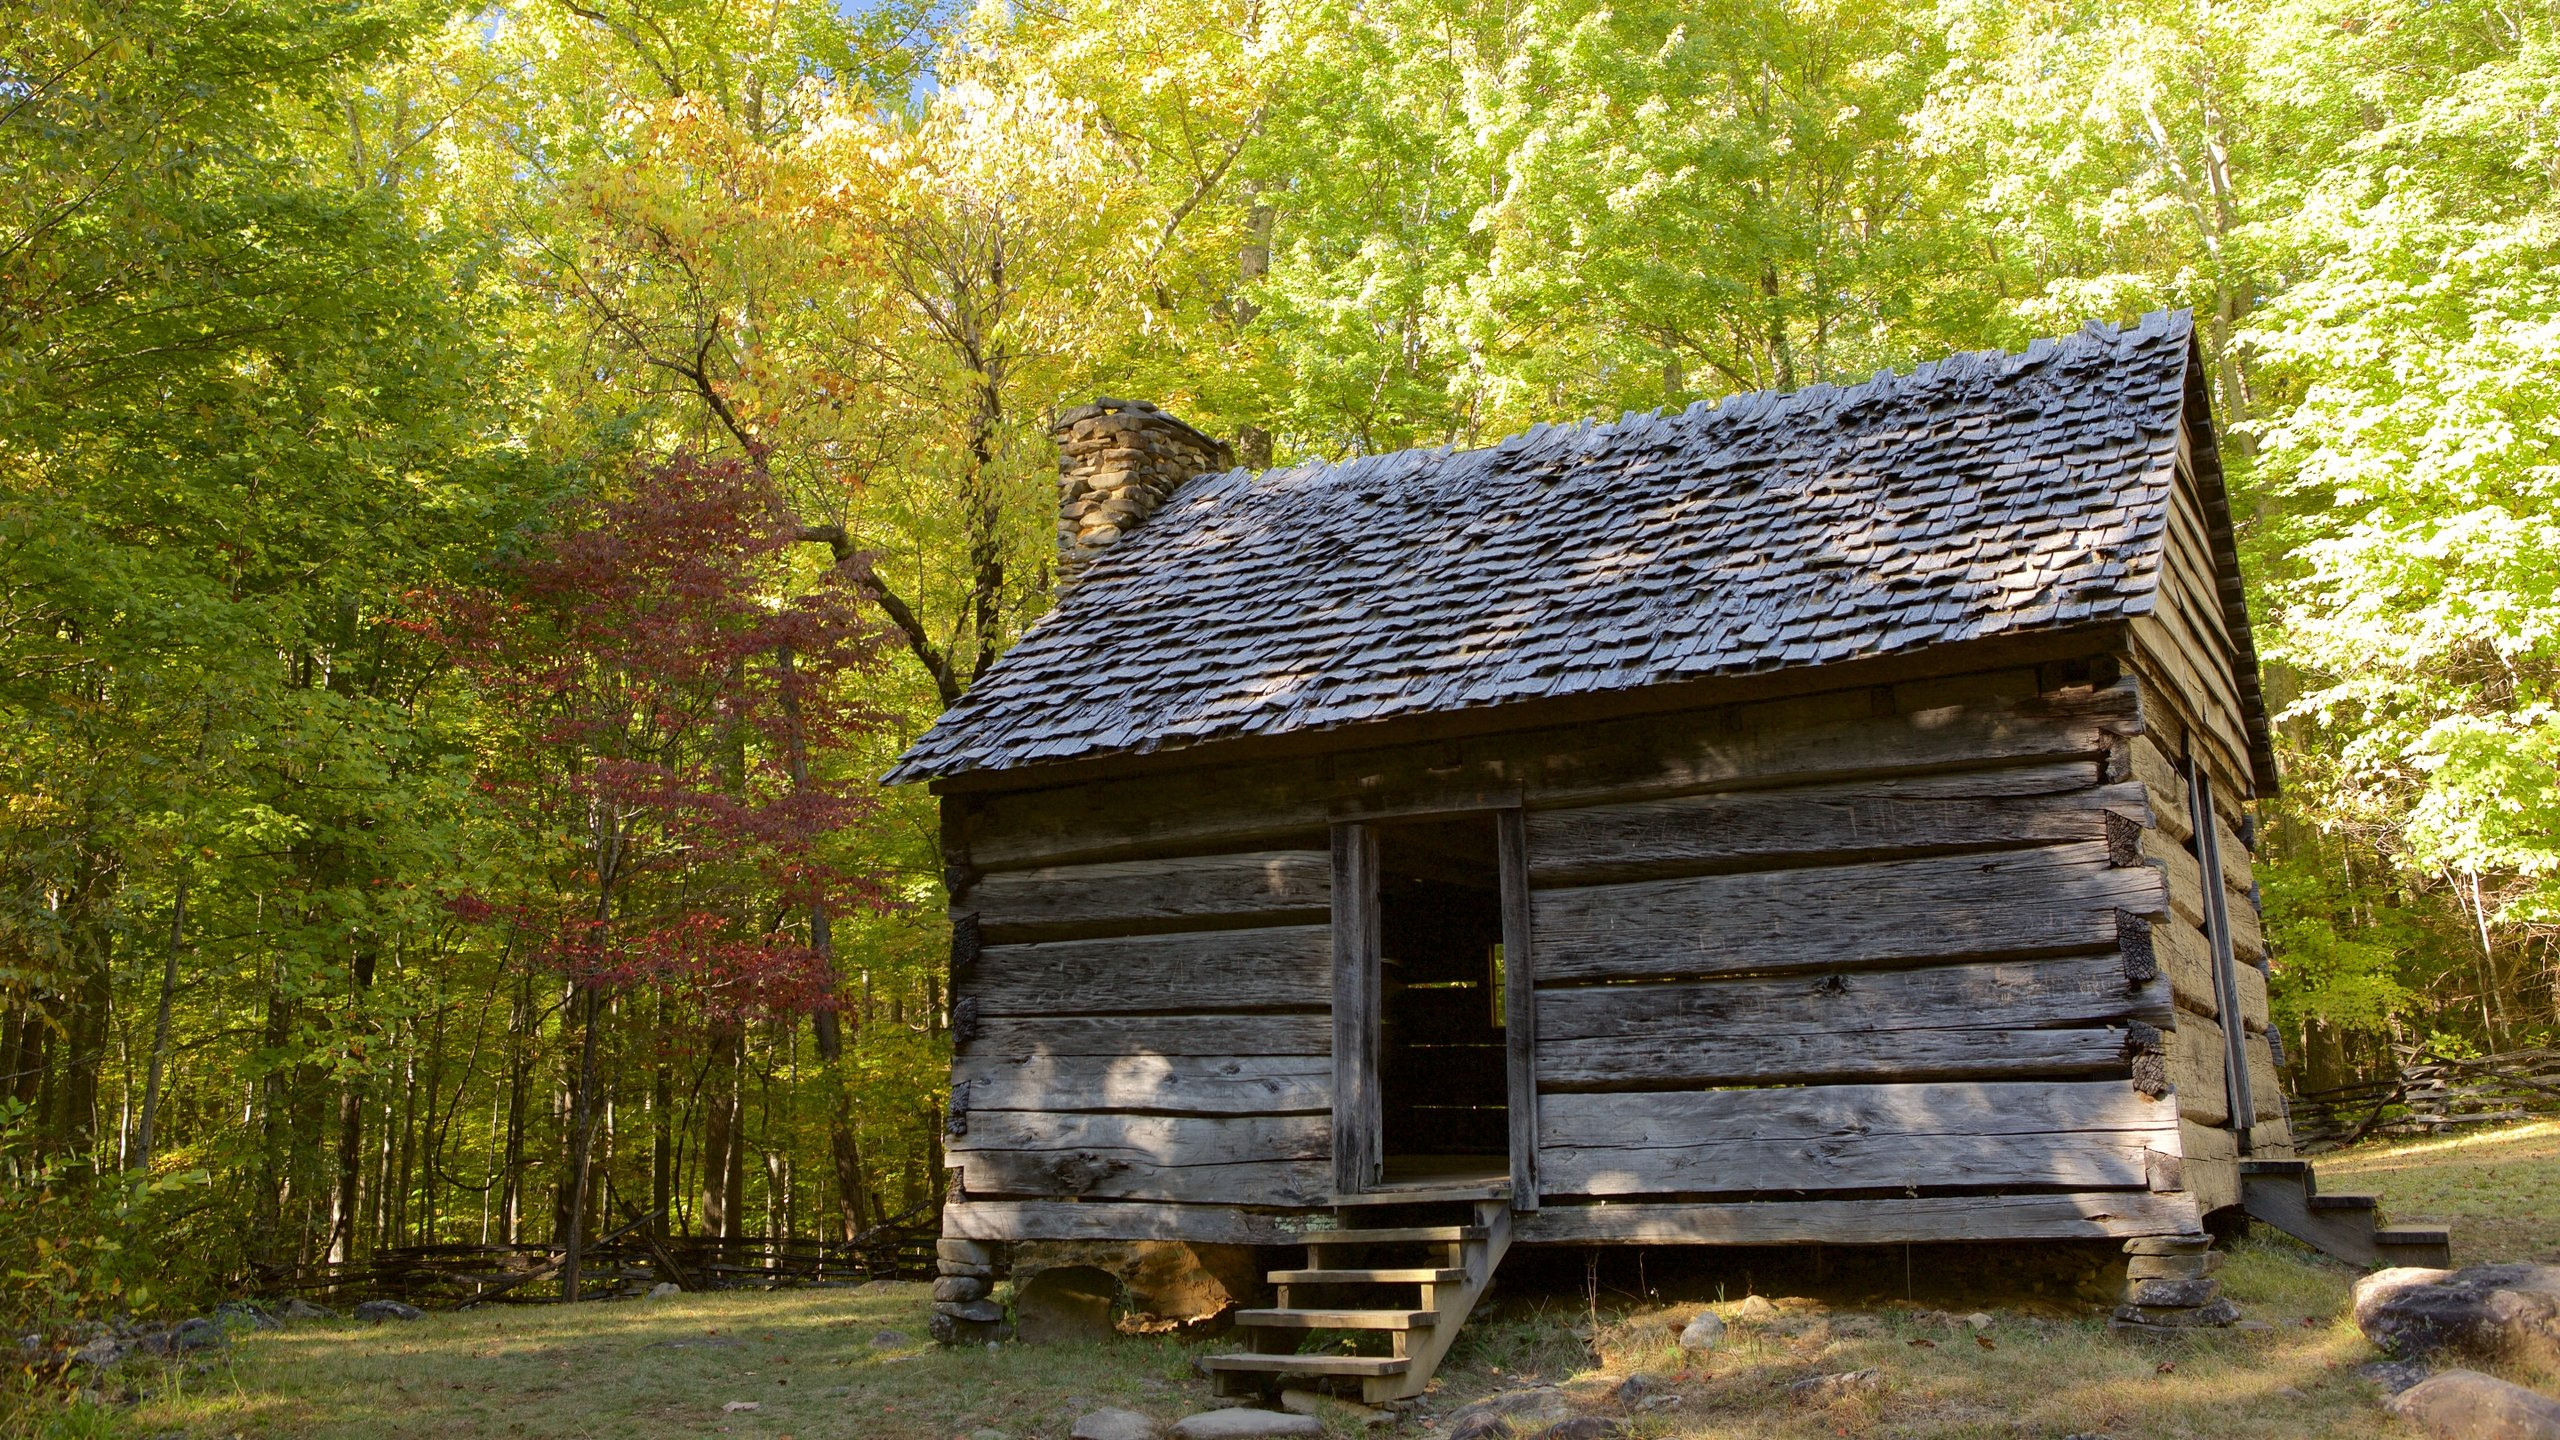 America's most visited national park offers blue mountain ridges, forested hiking trails, a variety of wildlife and bits of Southern mountain history.